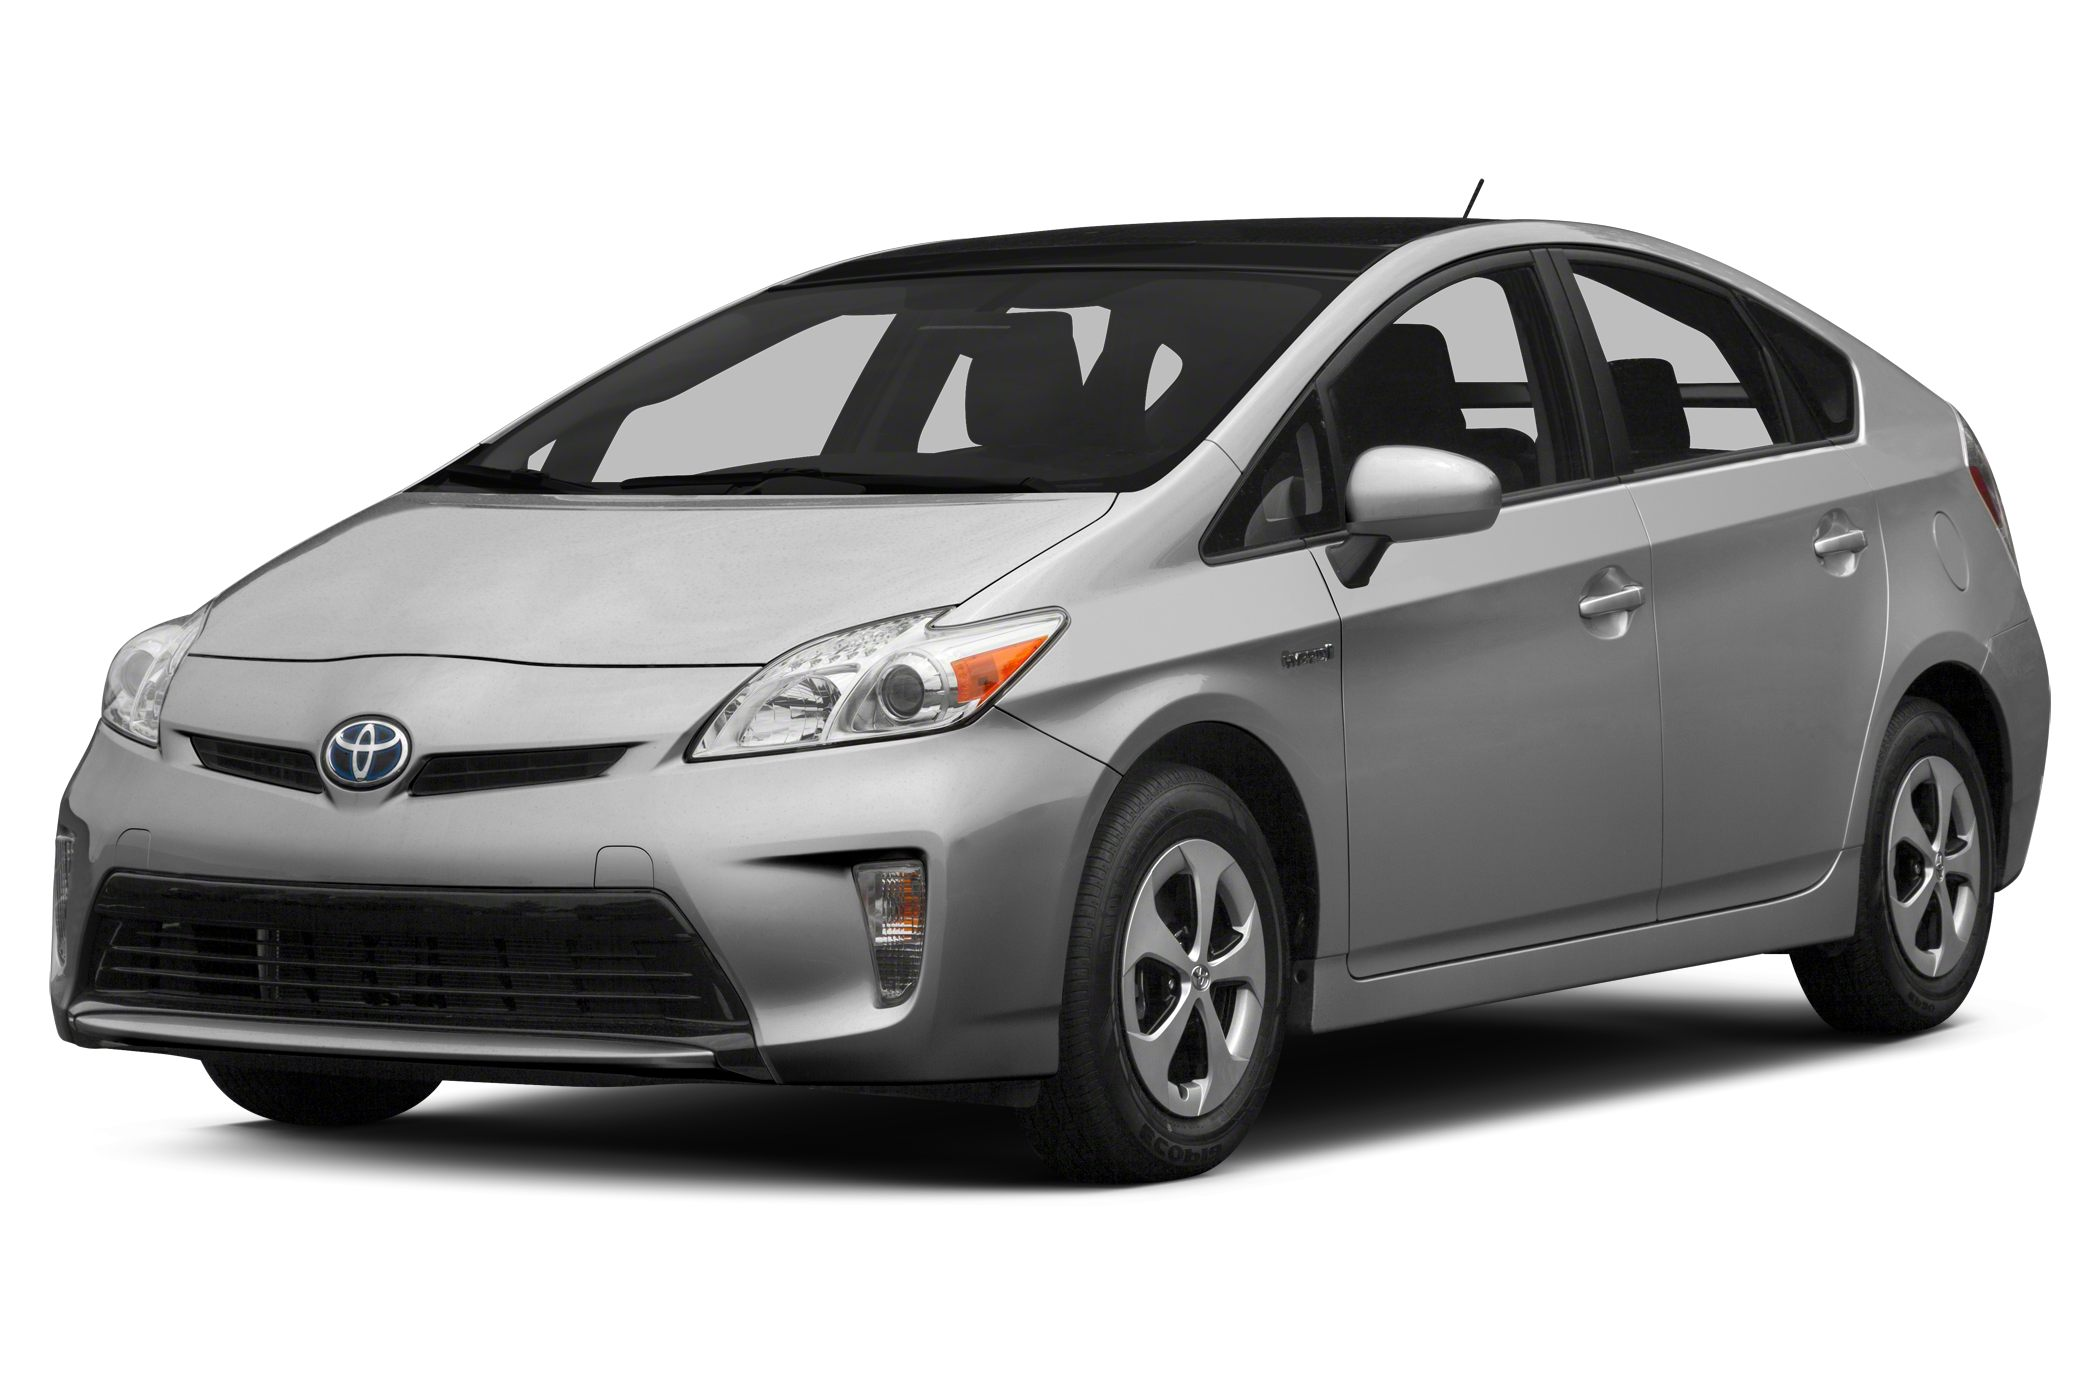 2017 Toyota Prius Pricing And Specs